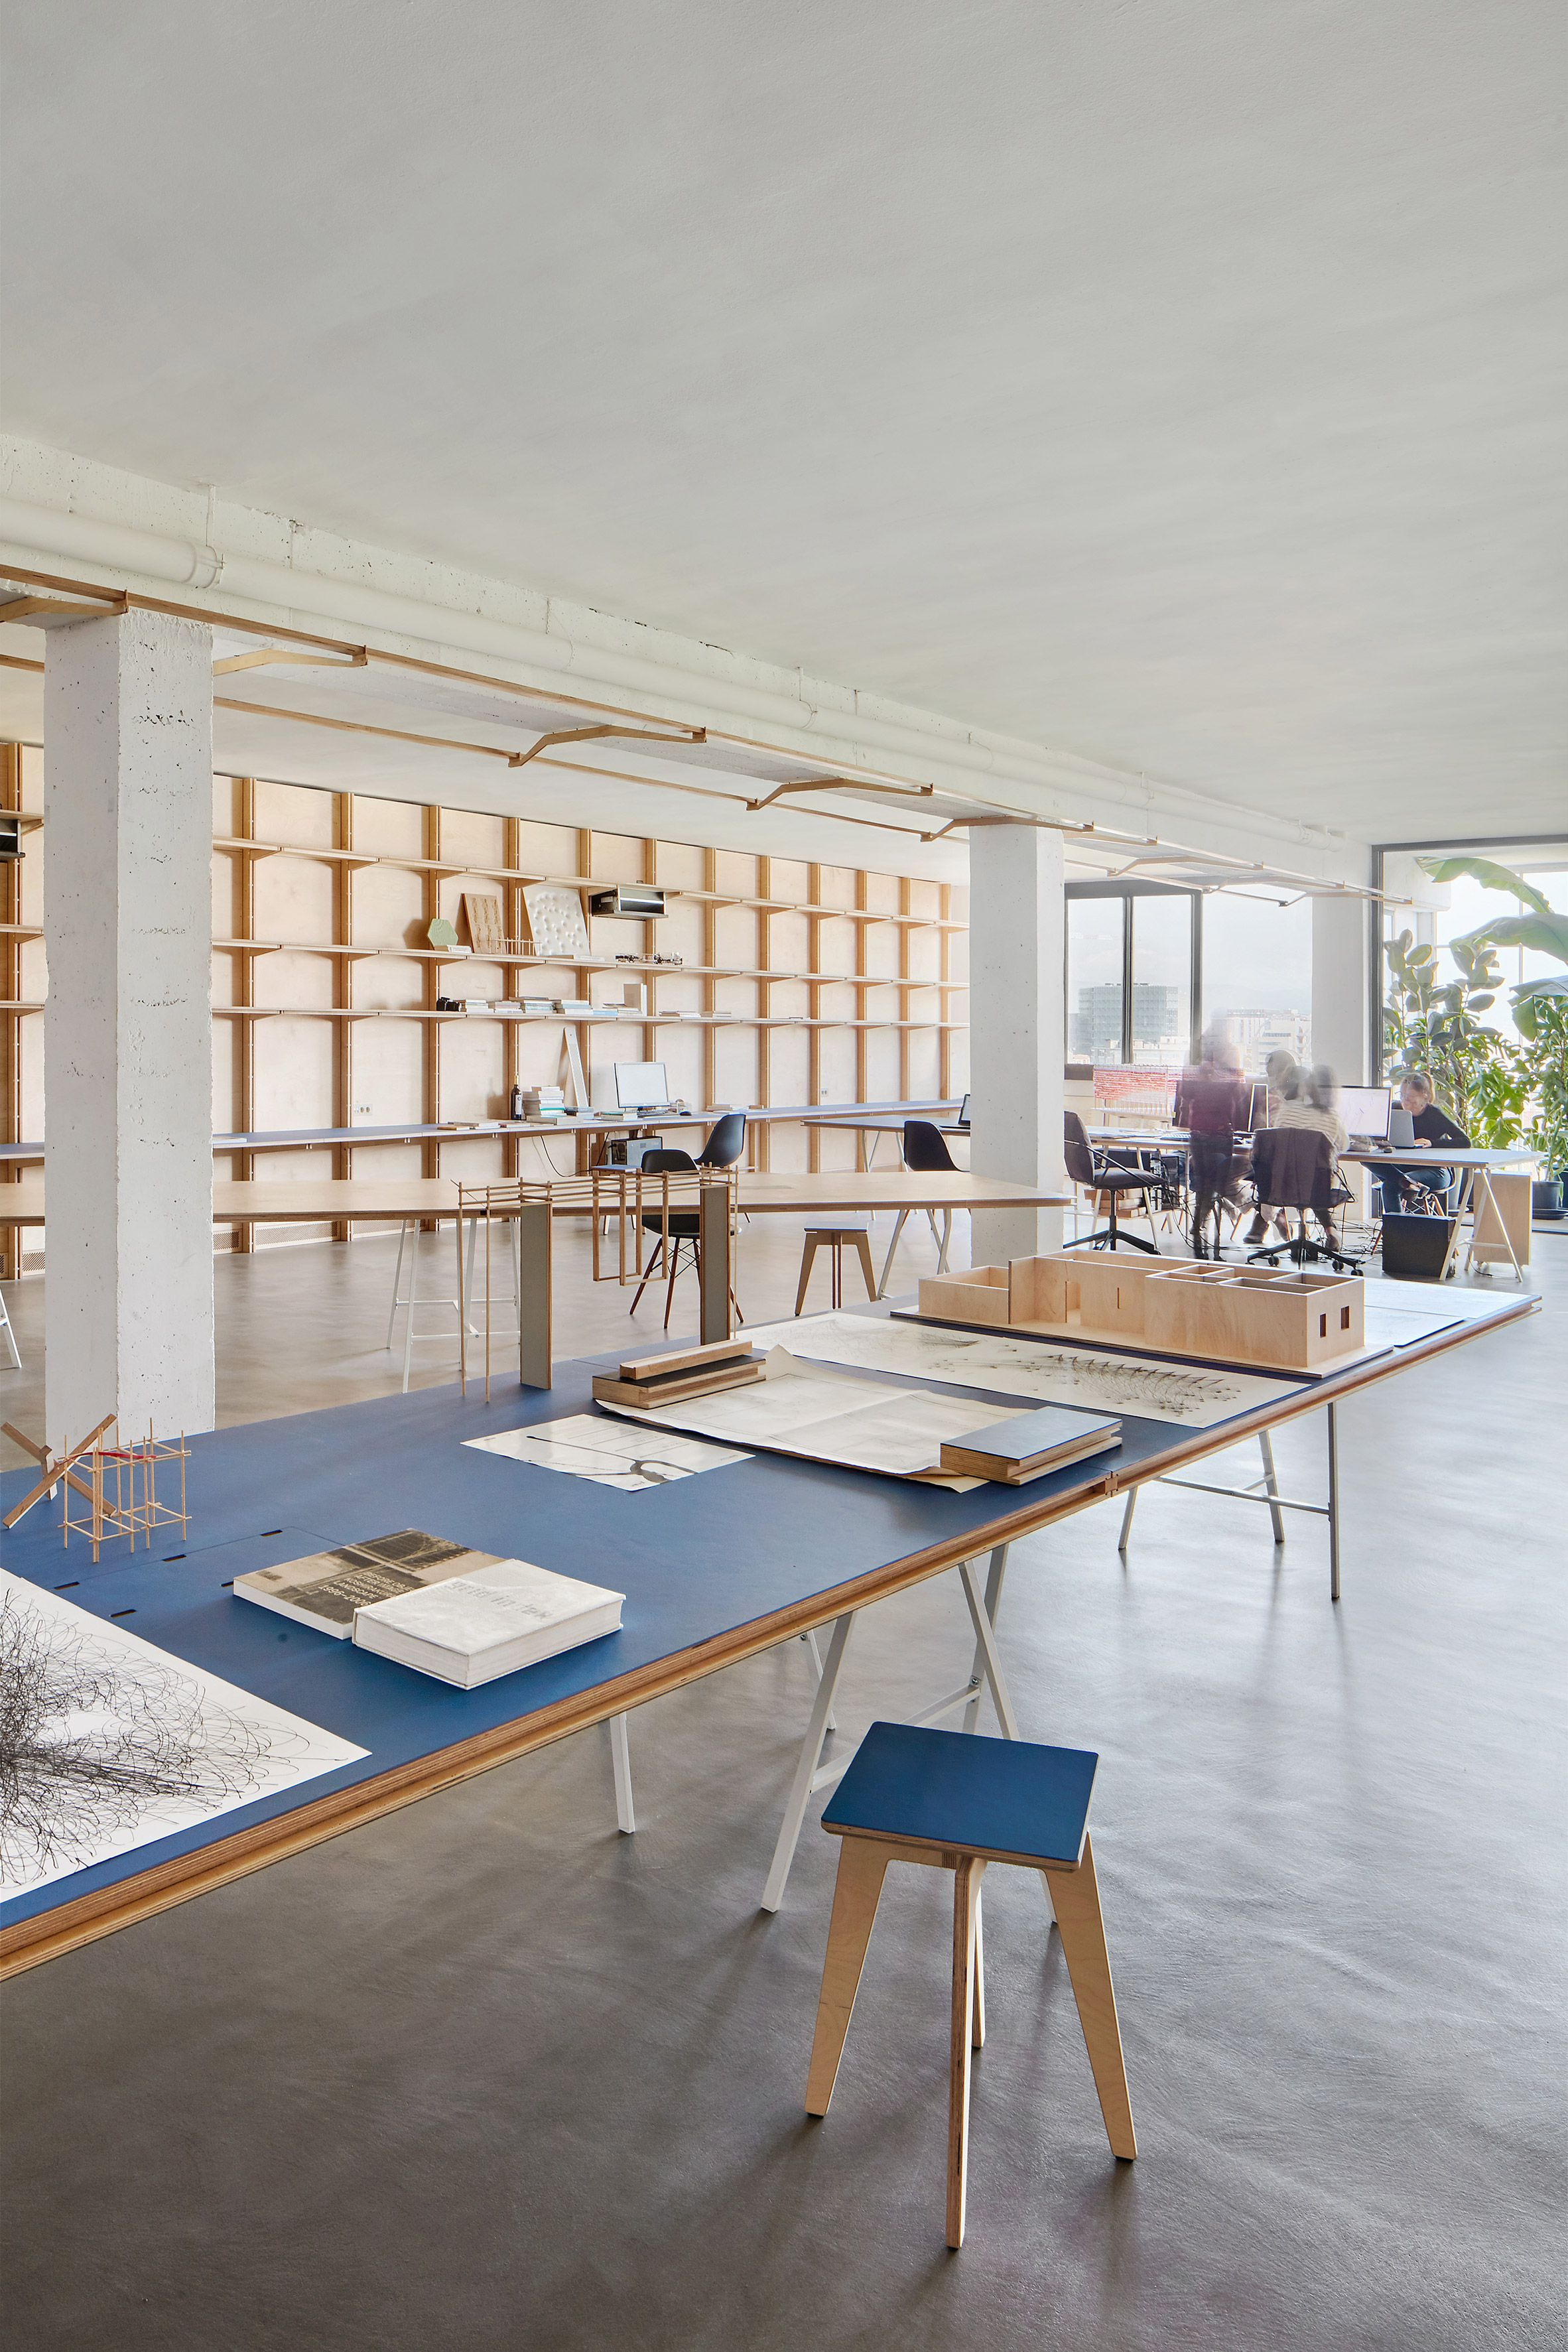 office and warehouse space. Barcelona Warehouse Transformed Into Flexible Co-working Space For Architects And Designers Office